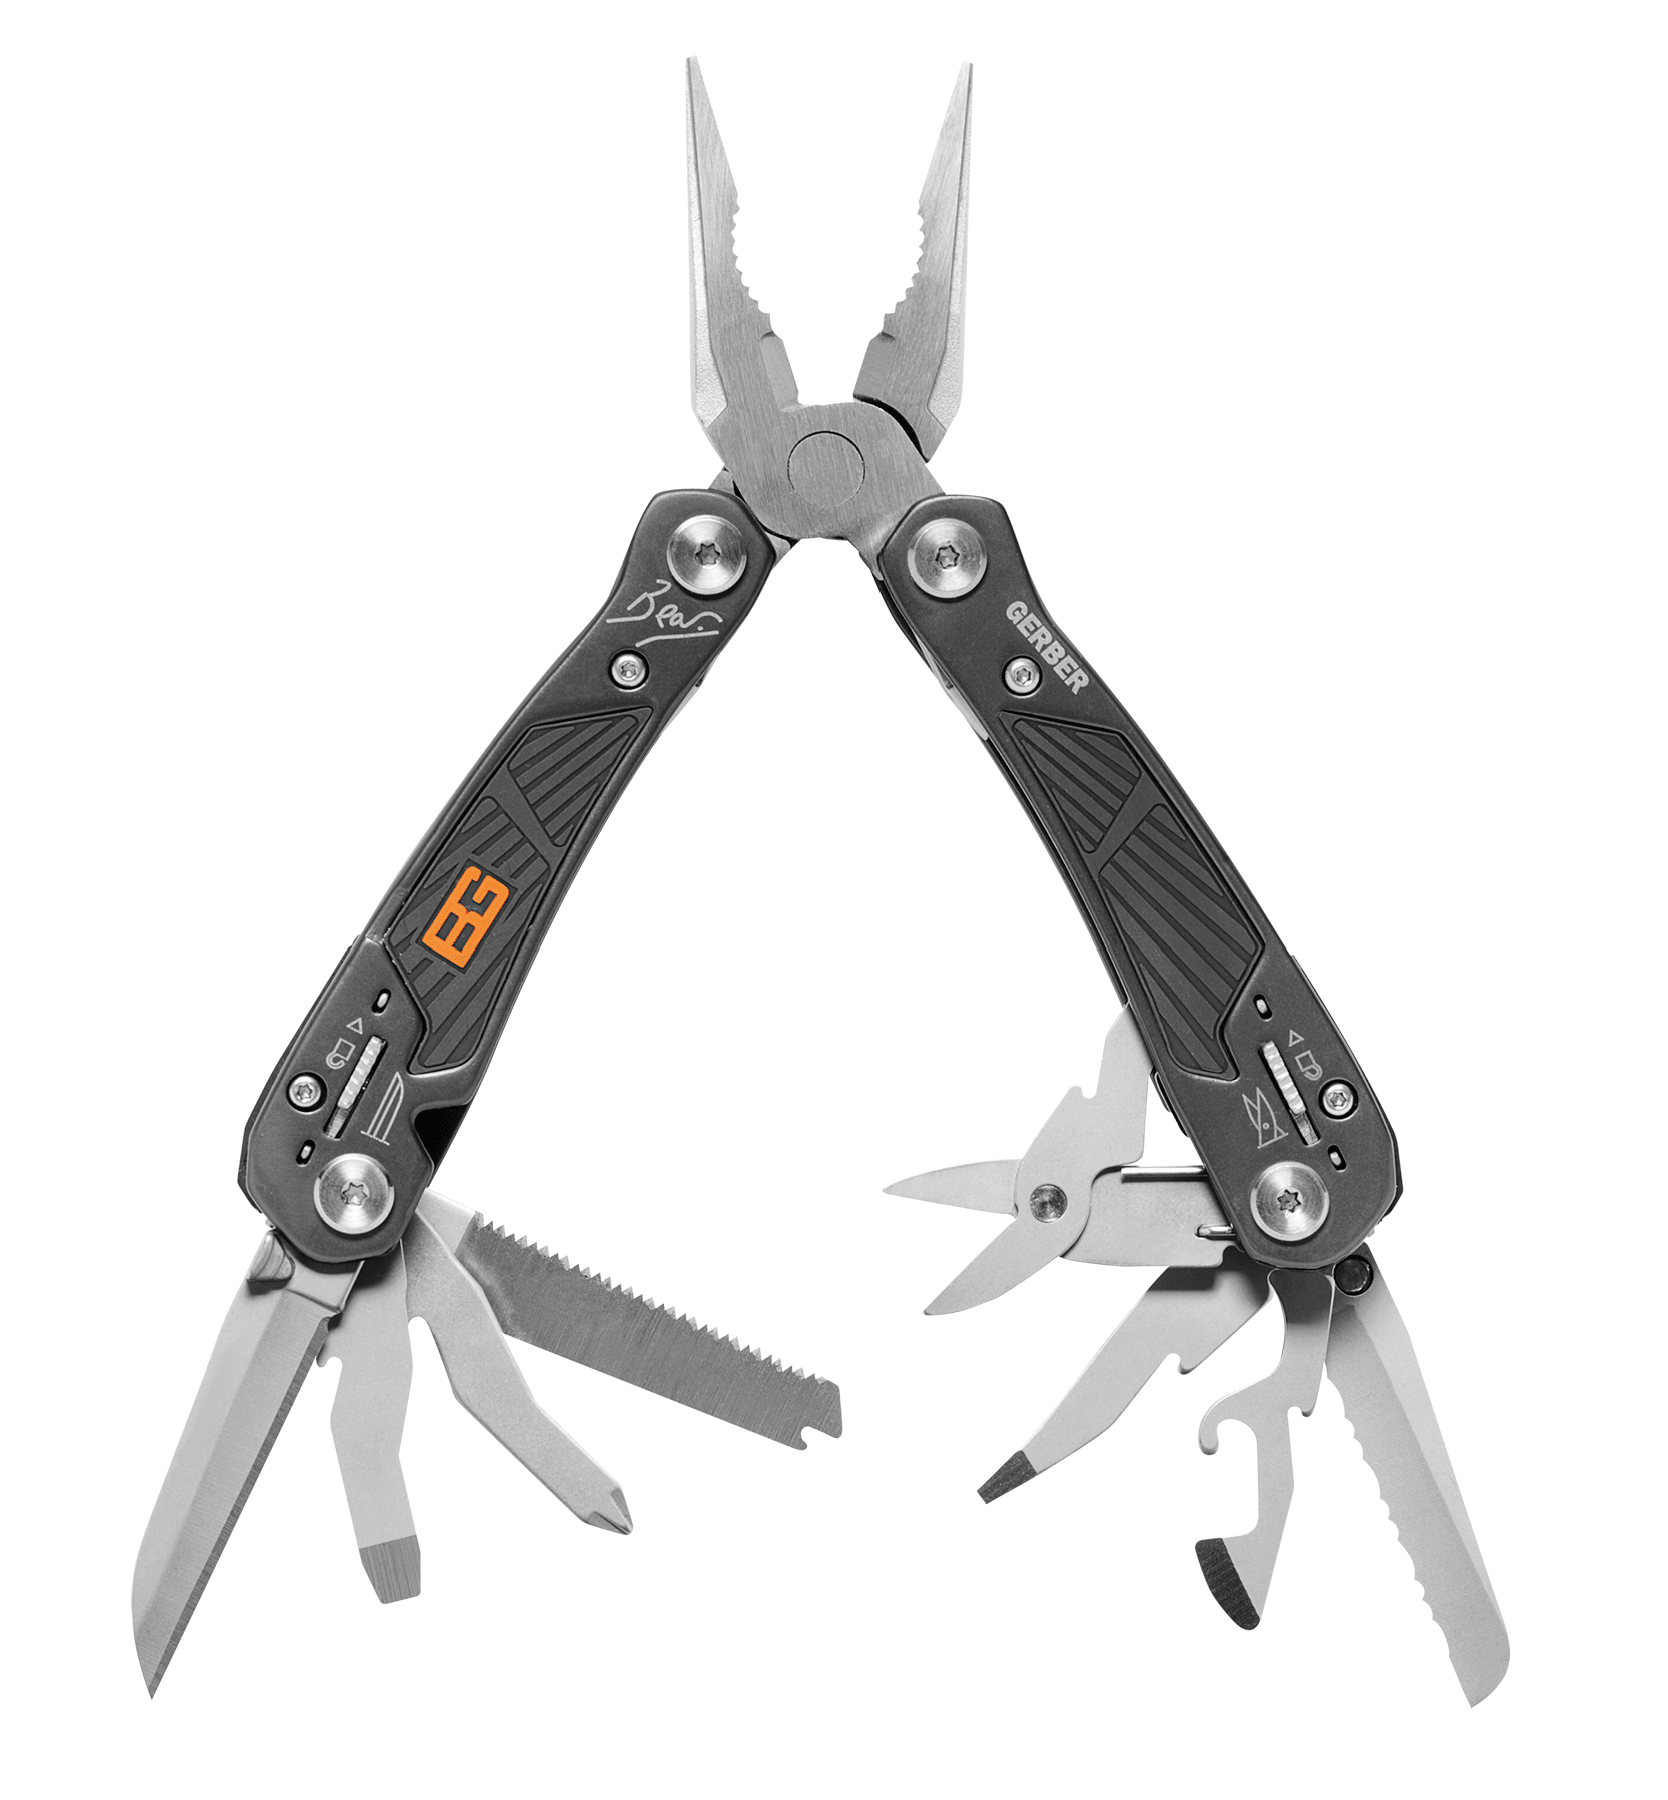 Gerber 000749 BG Multi-Tool Stainless Multiple Blades Blade Stainless Steel